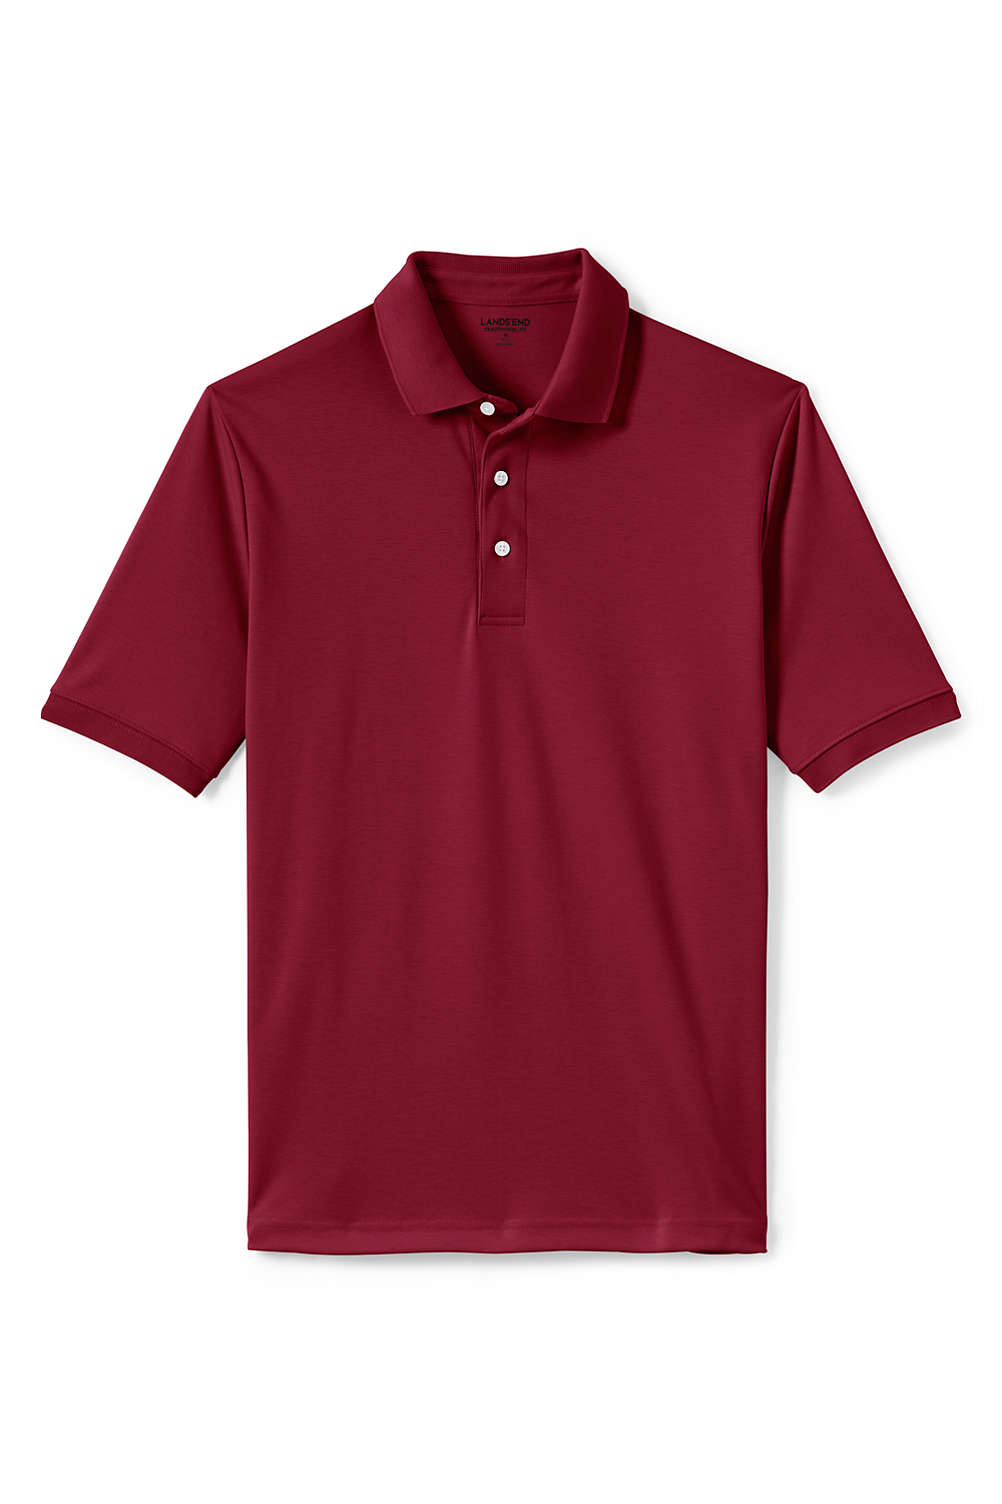 Mens Short Sleeve Supima Polo Shirt From Lands End